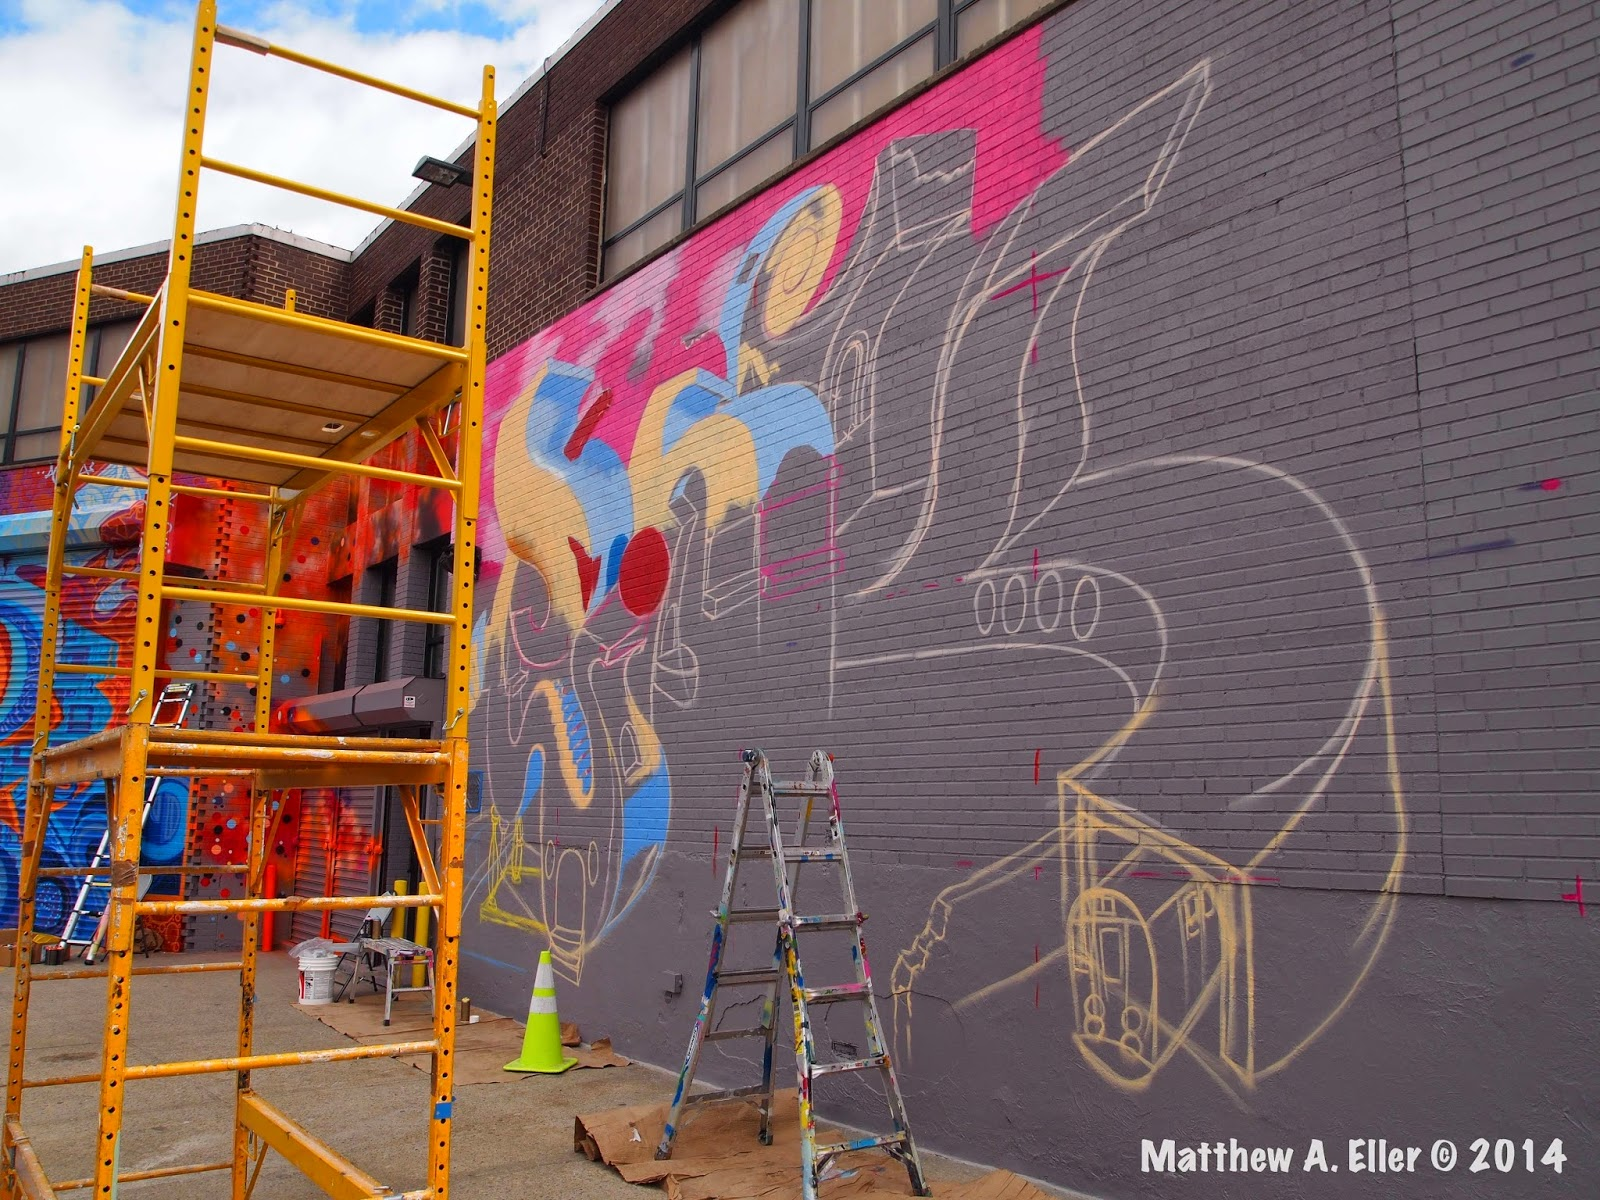 Preview 106 Bayard Graffiti Project Feat Futura 2000 Dr